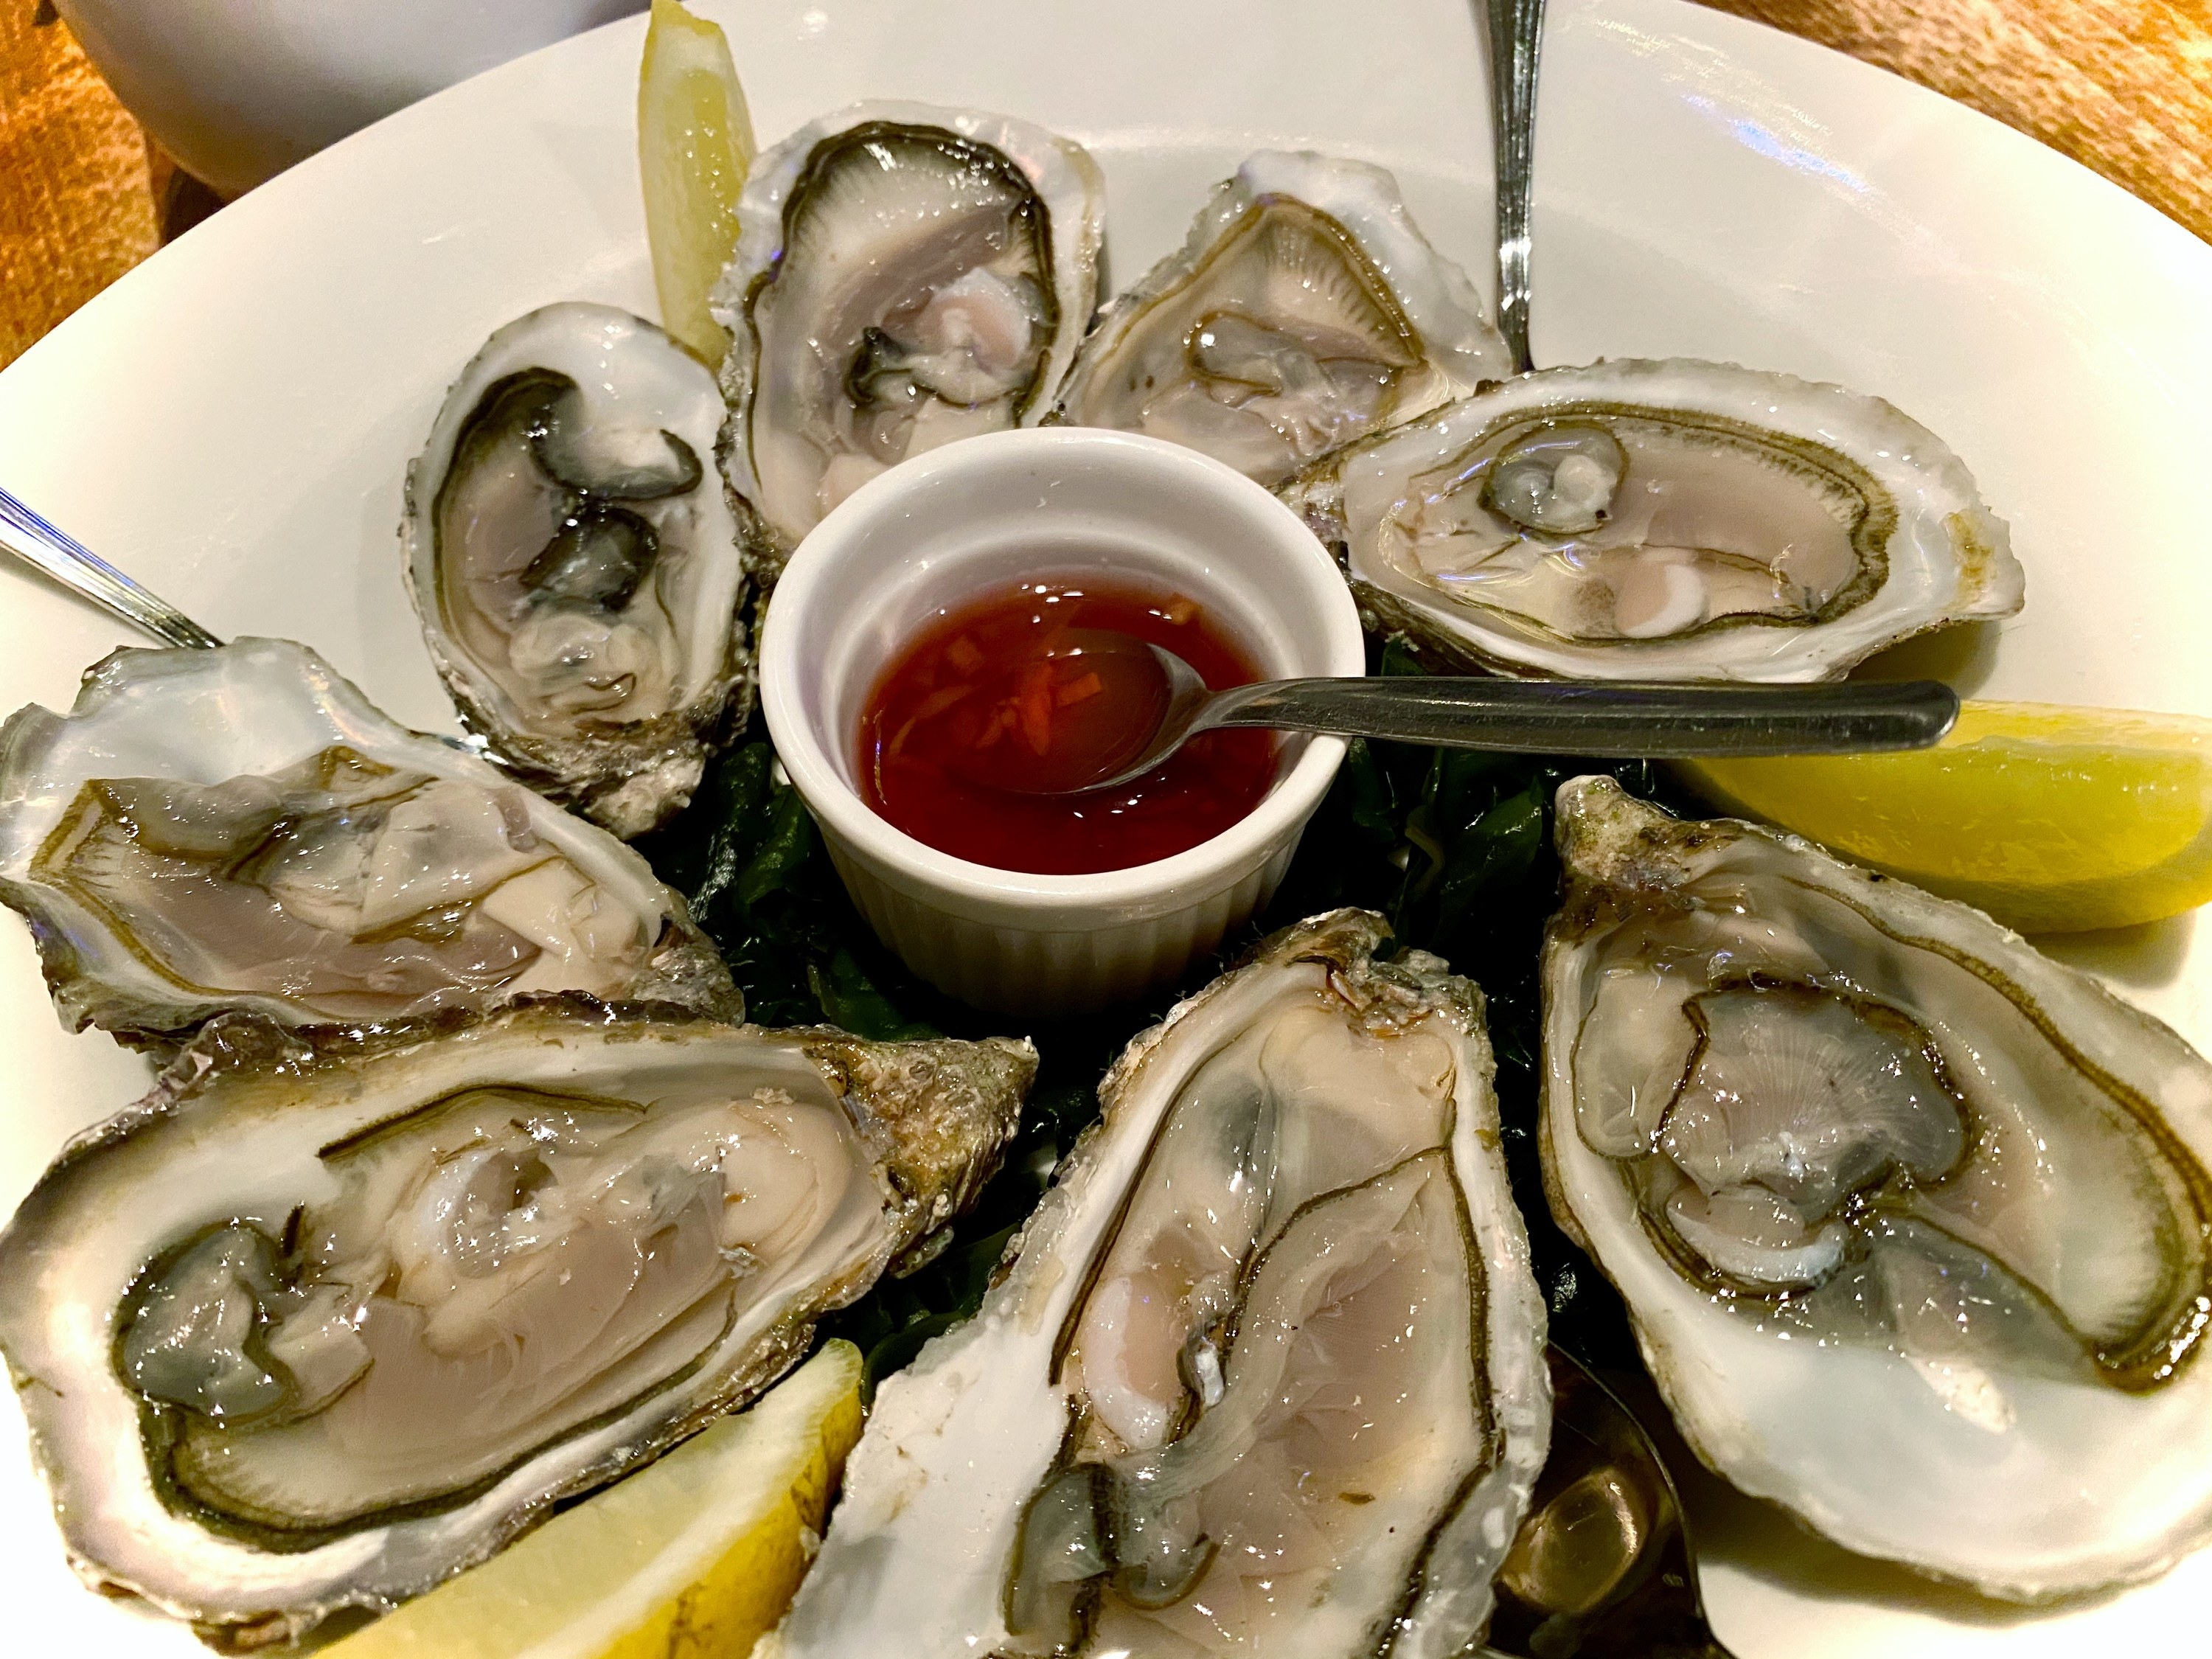 Eight fresh raw oysters are served on a white plate with lemons and sauce